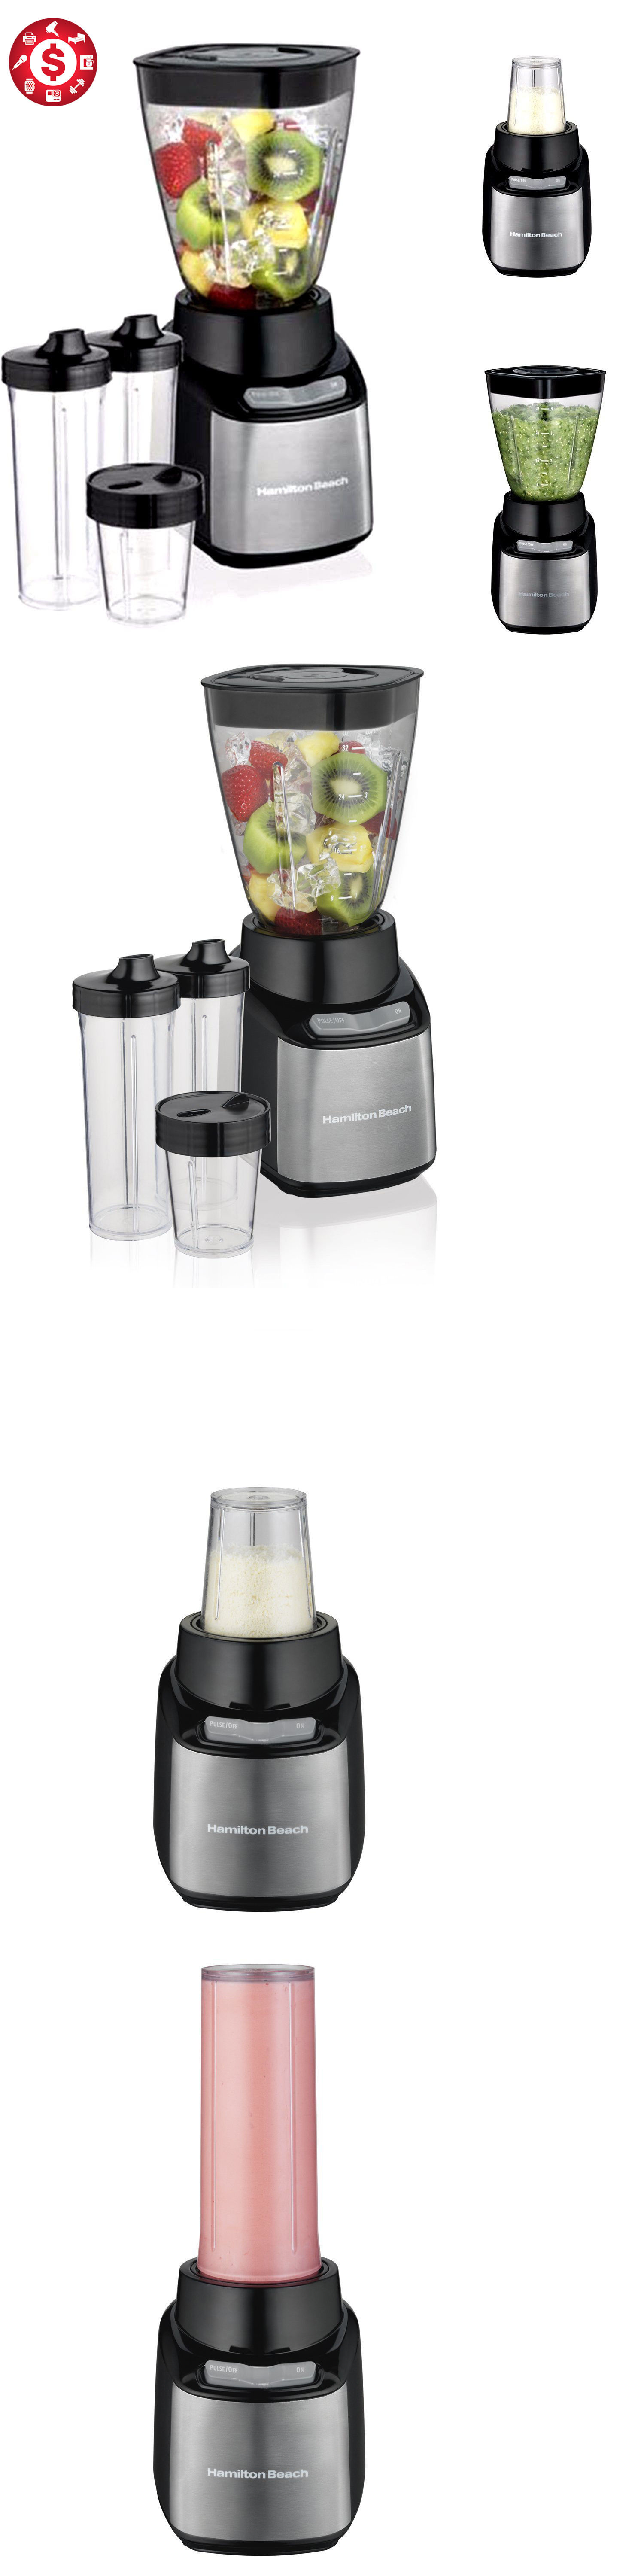 5l accents range only electricals co uk small kitchen appliances - Small Kitchen Appliances 8 Pc Electric Blender Chopper Food Processor Smoothie Drink Mixer Ice Crusher